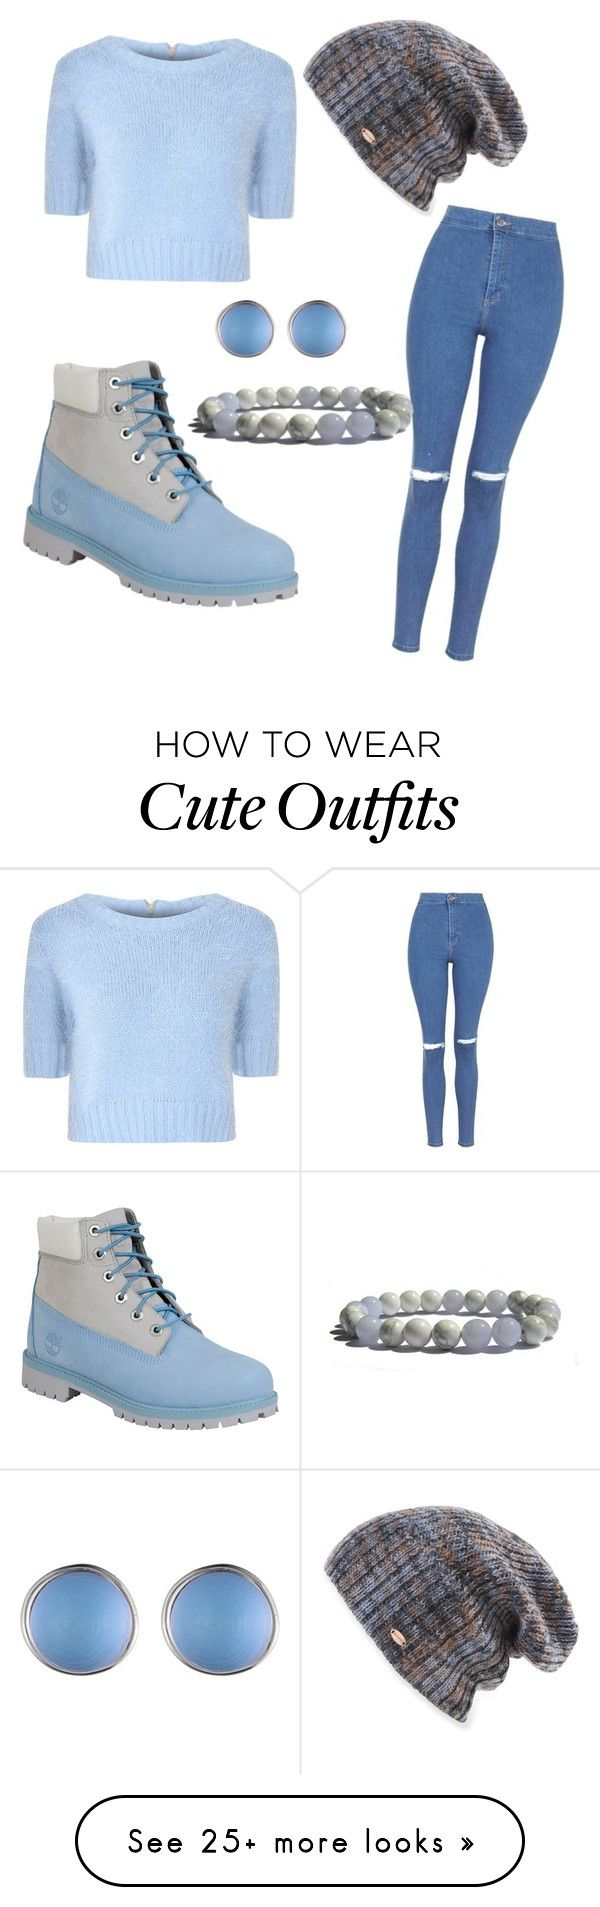 """""""Fall simple cute outfit"""" by ciarachanel21 on Polyvore featuring Glamorous, Topshop, Timberland, Alexis Bittar and Spacecraft"""